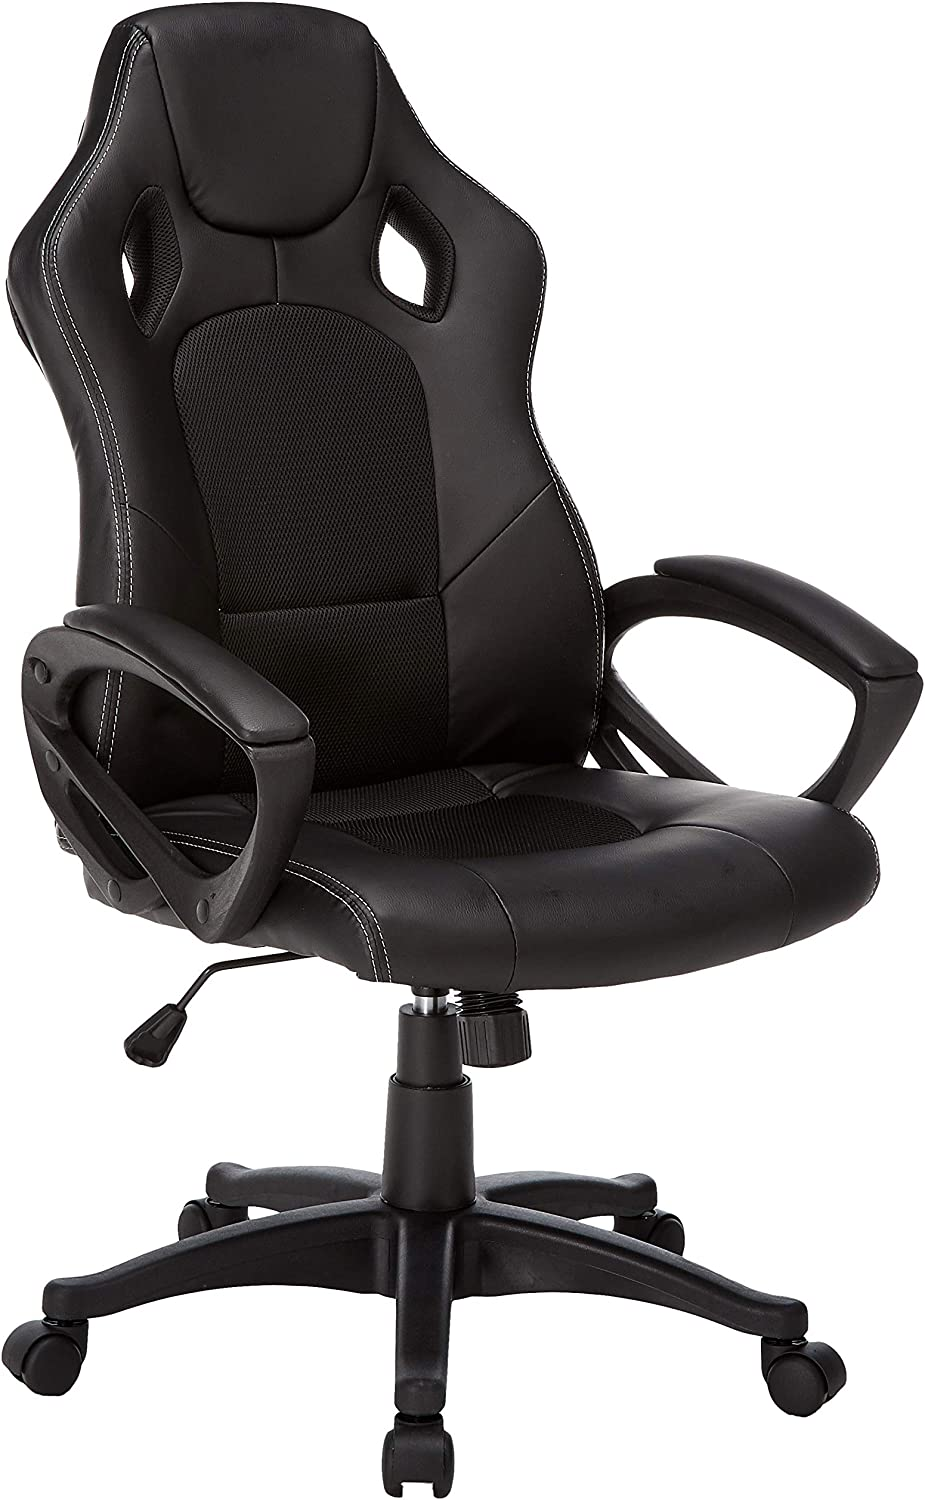 IDS Online Video Gaming Racing Home Computer Desk Ergonomic High Back Executive Office Chair by IDS, Black